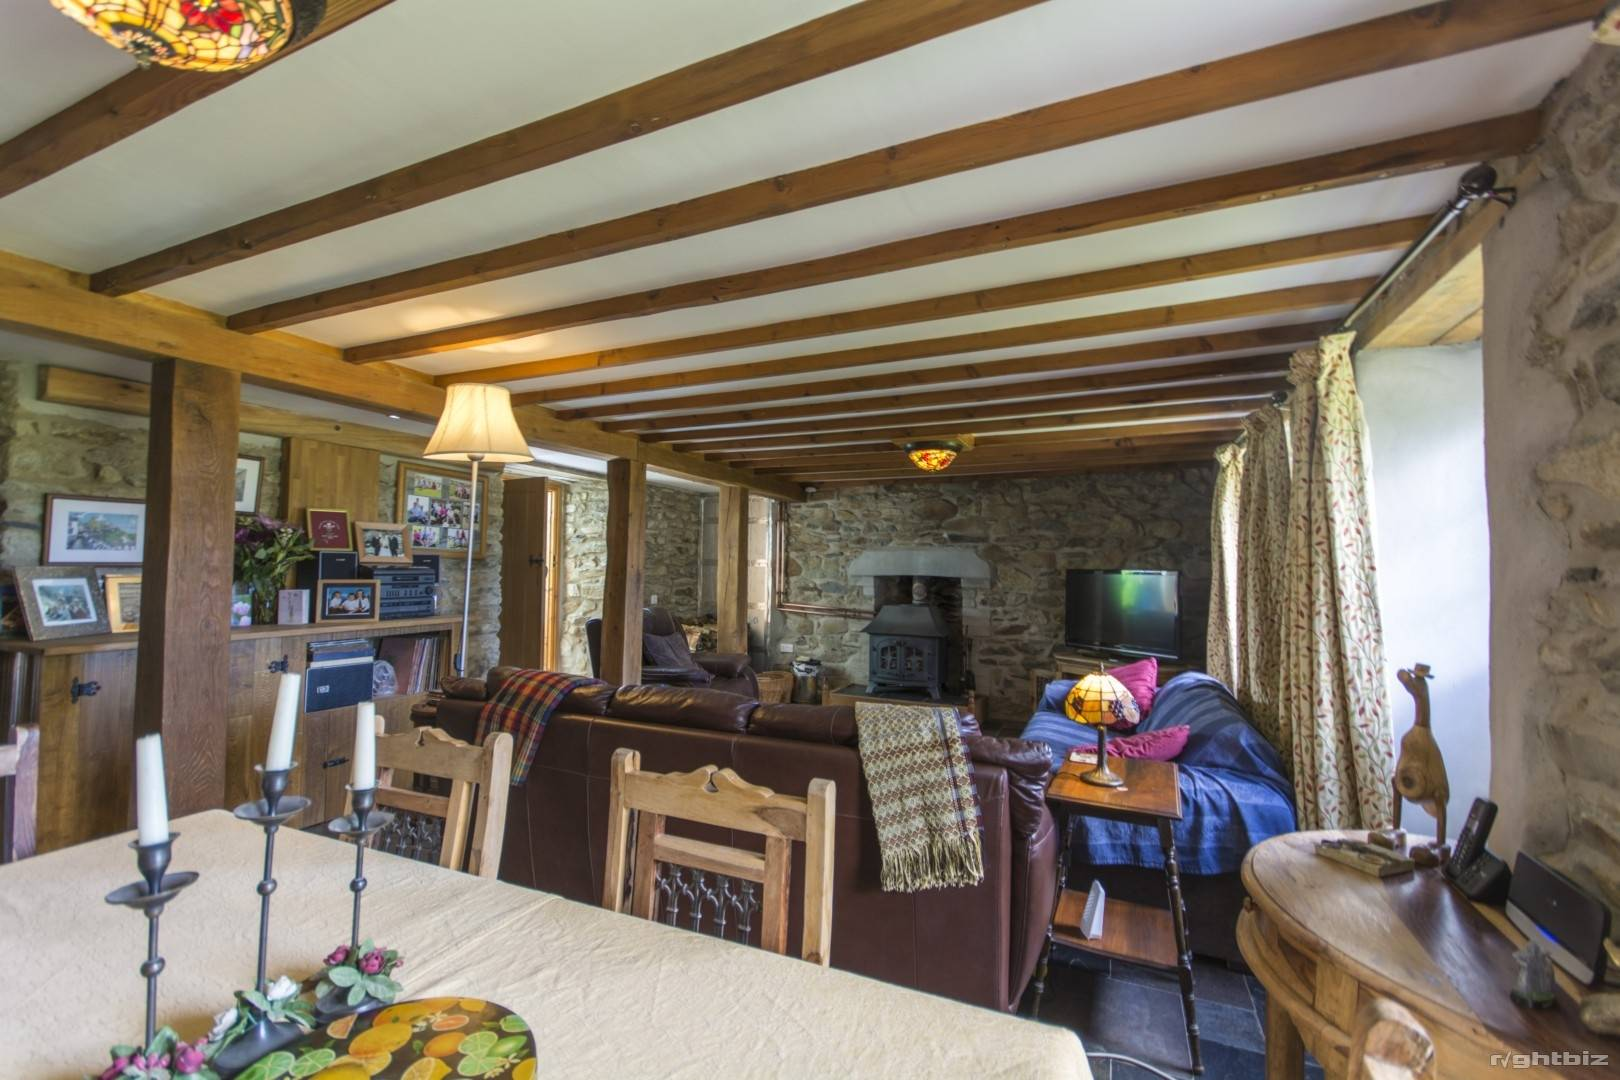 HOLIDAY LETTING BUSINESS/ LIVERY POTENTIAL + SMALLHOLDING + STABLES SET IN 10 ACRES - PEMBROKESHIRE - Image 3